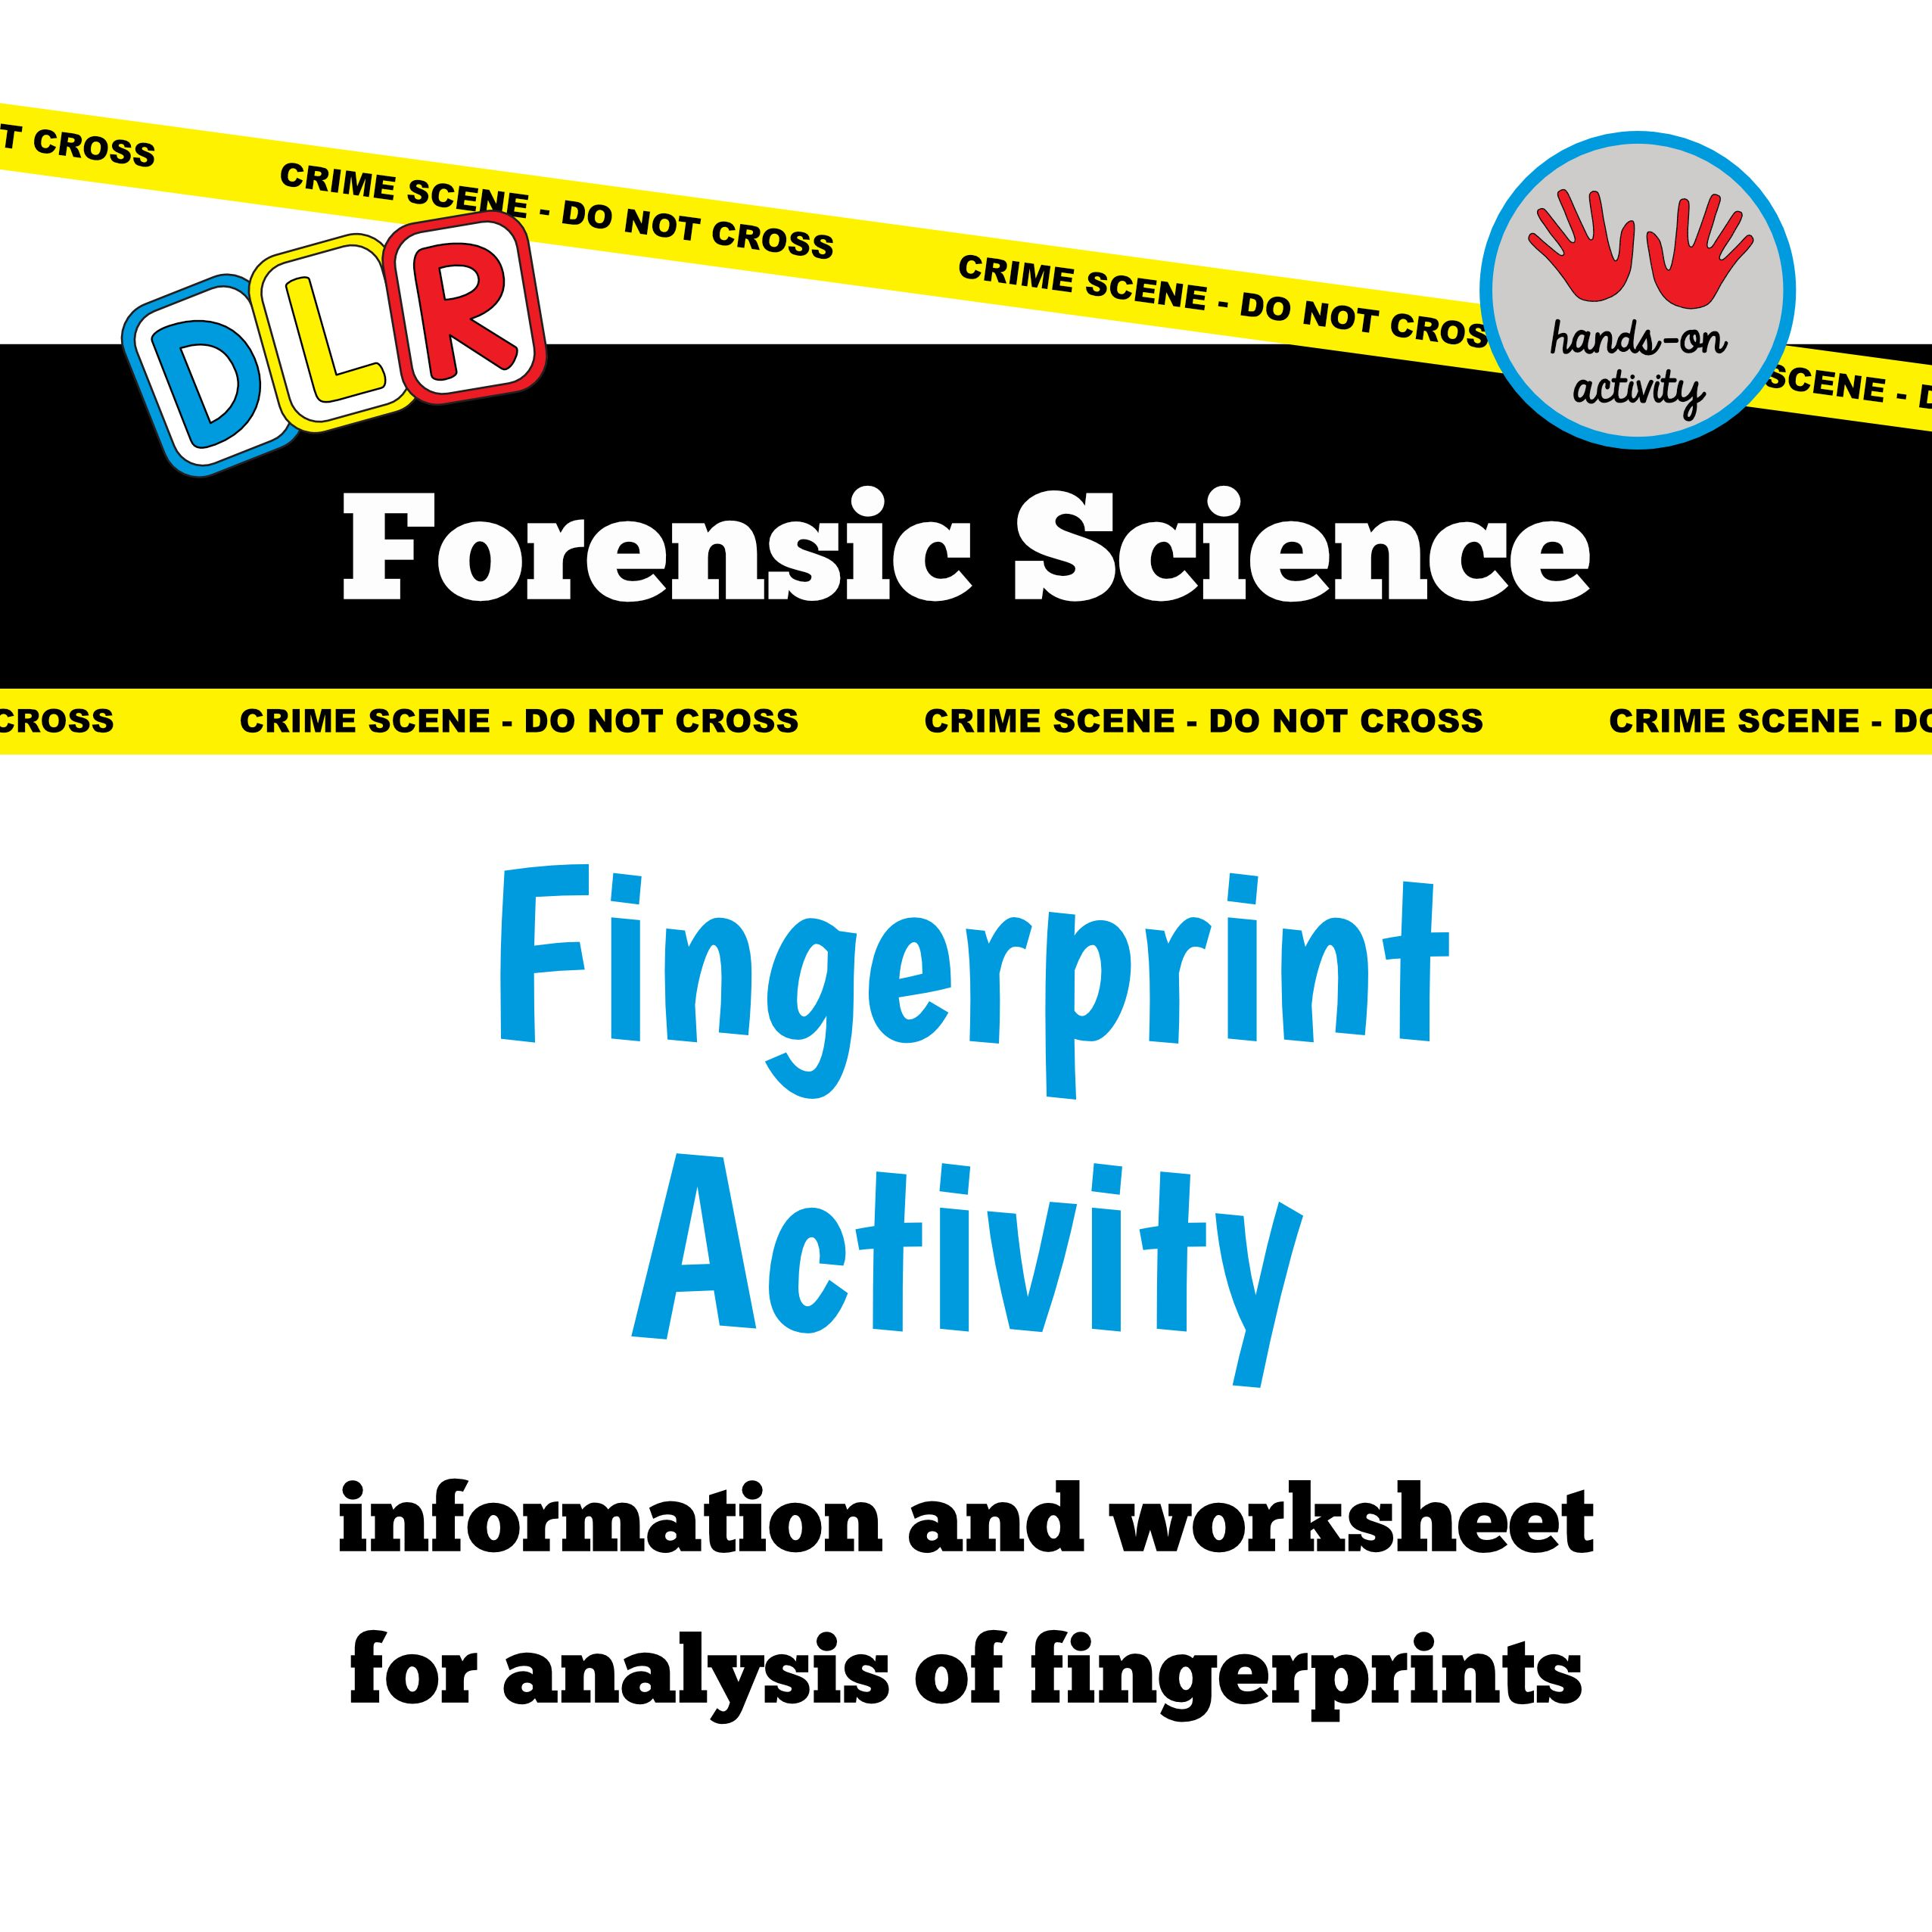 worksheet Forensic Science Worksheets forensic science gingerbread house mystery 3d model activity free worksheet fingerprint